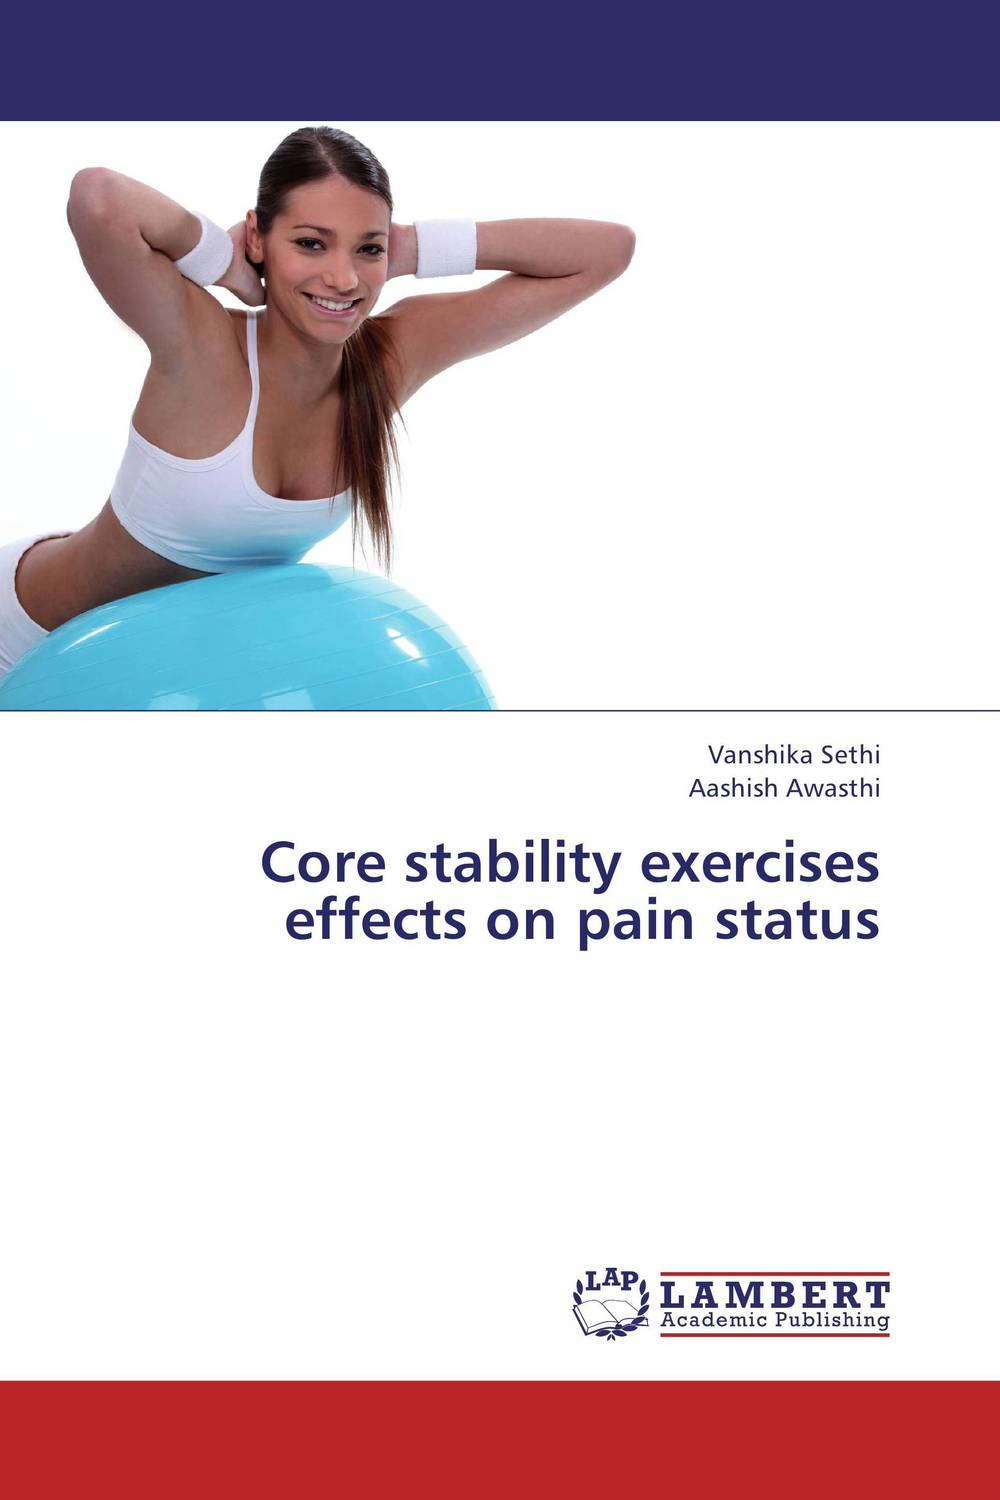 Core stability exercises effects on pain status exercise effects on morphine